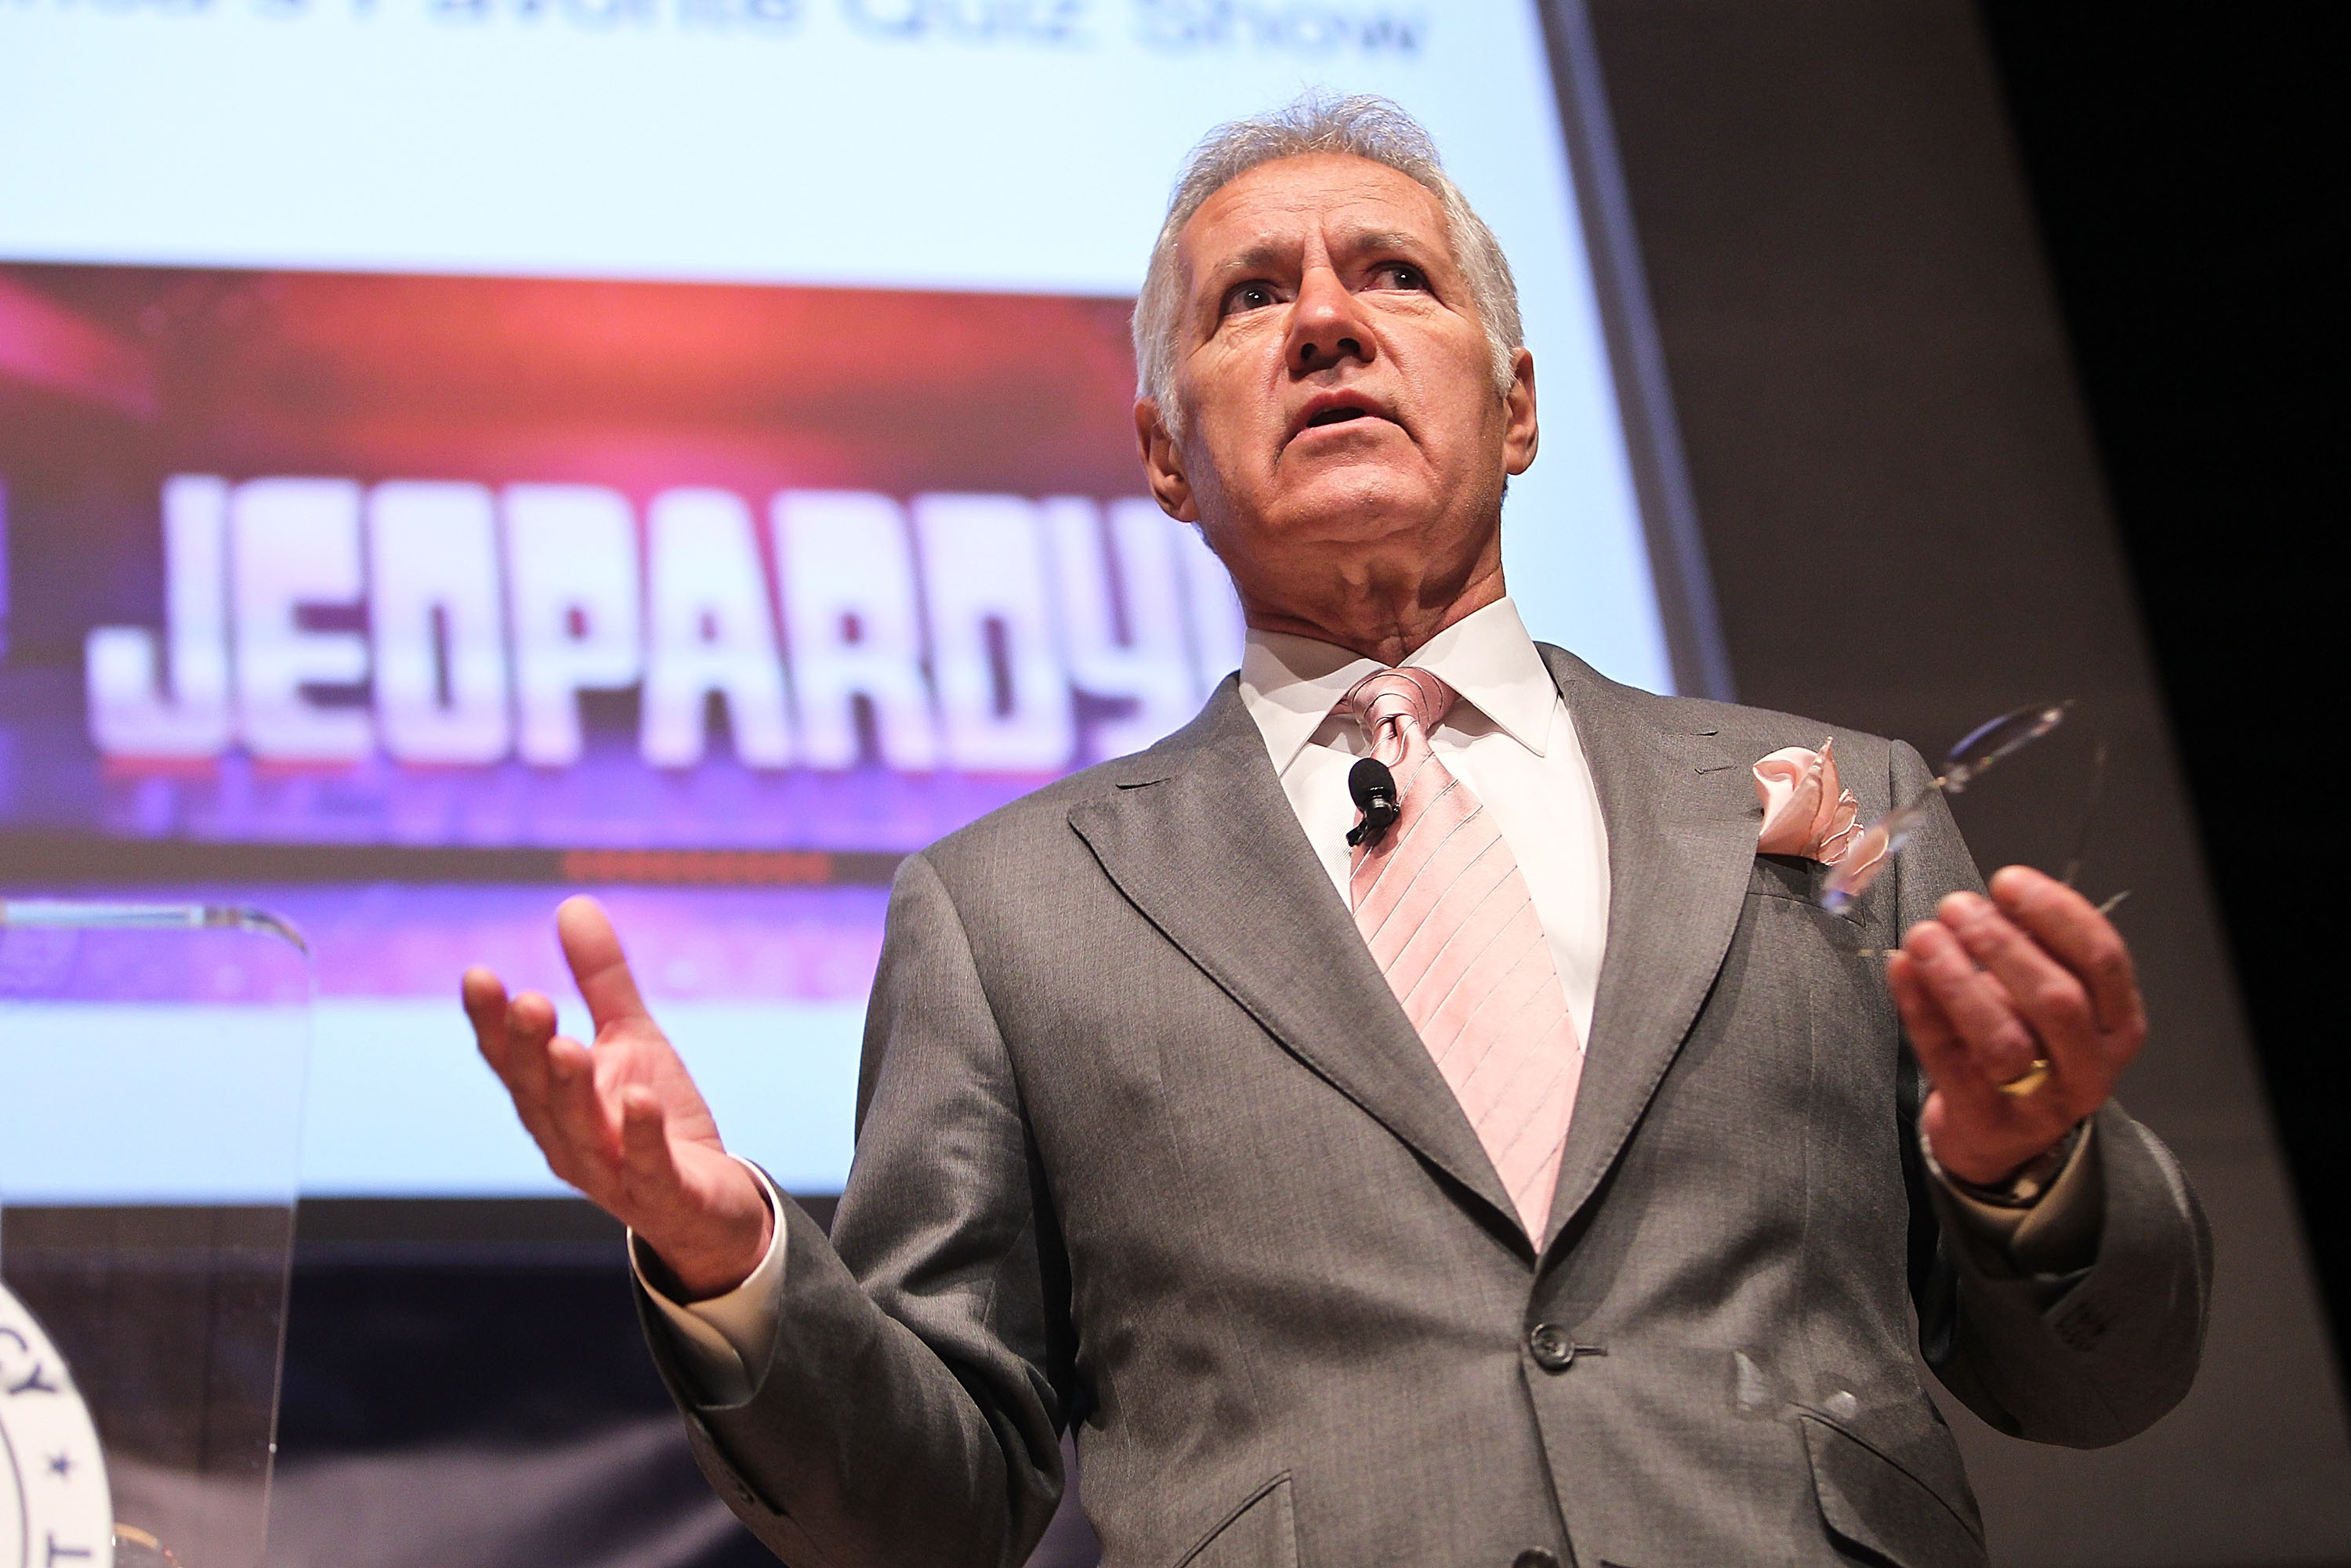 Alex Trebek standing on the set of the Jeopardy game show with the logo behind him on a screen.